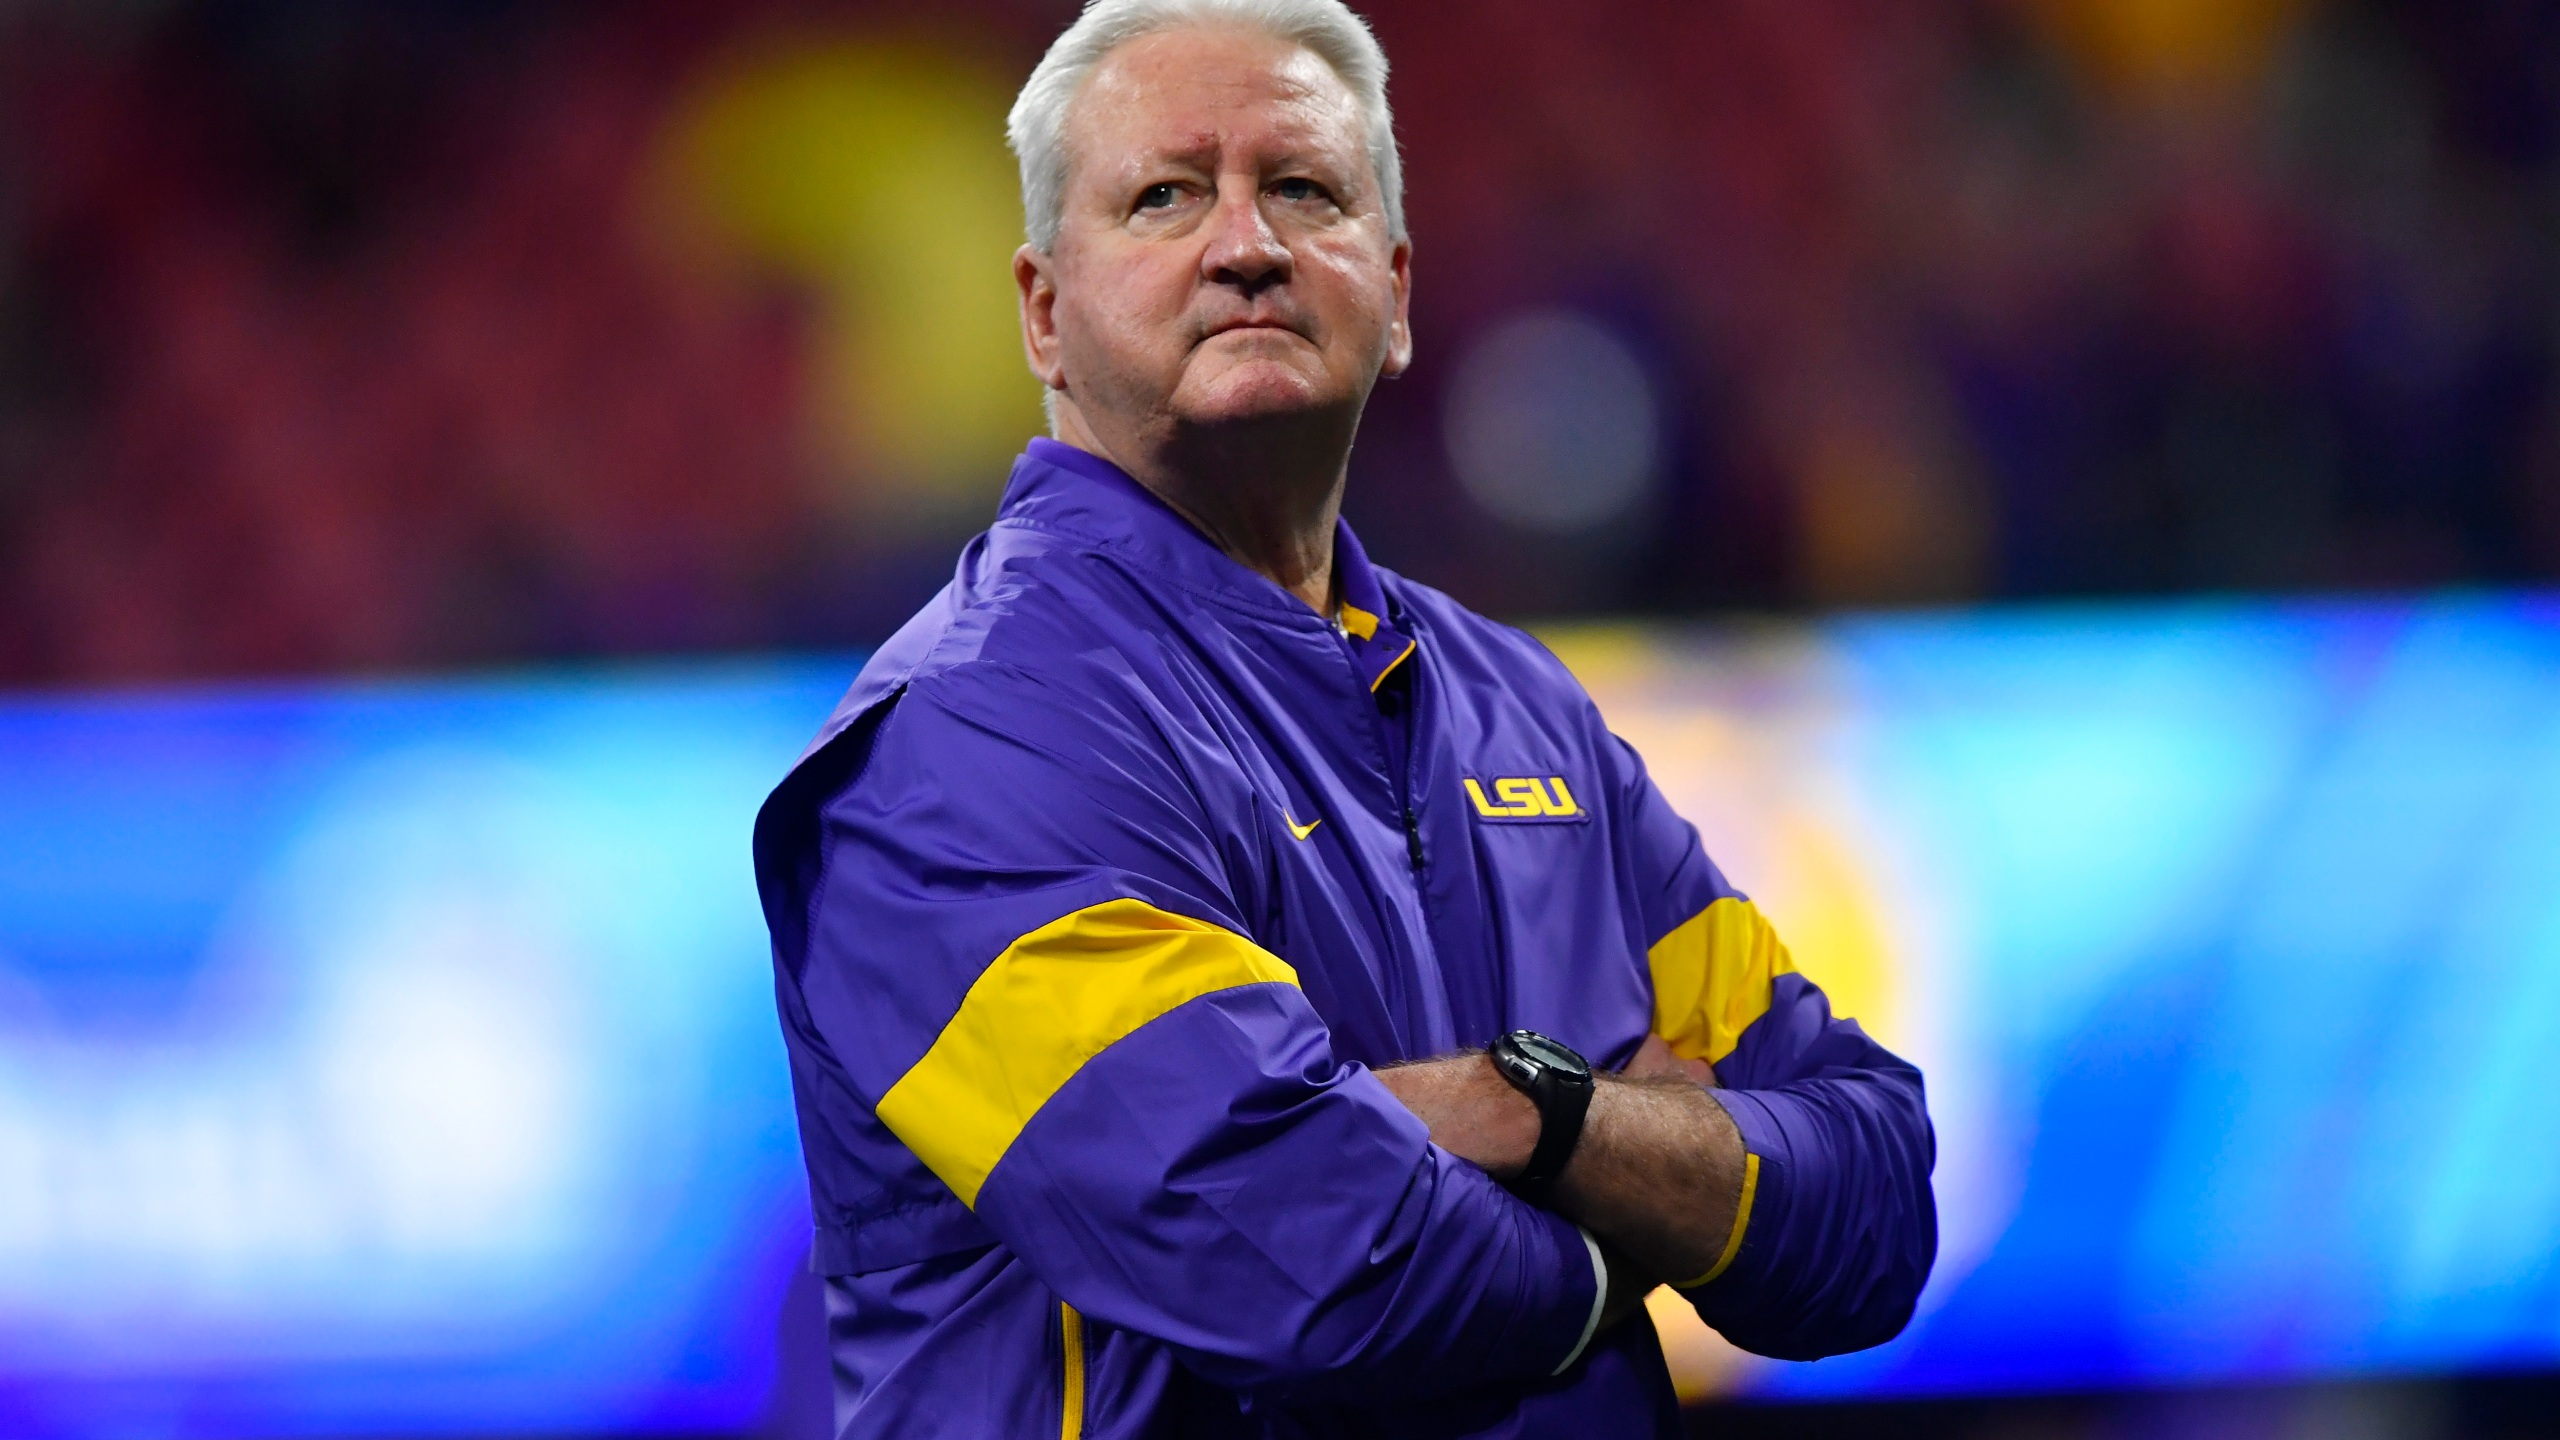 Alvin Purple Tv Series Download under weight of family tragedy, lsu coach crafts big win